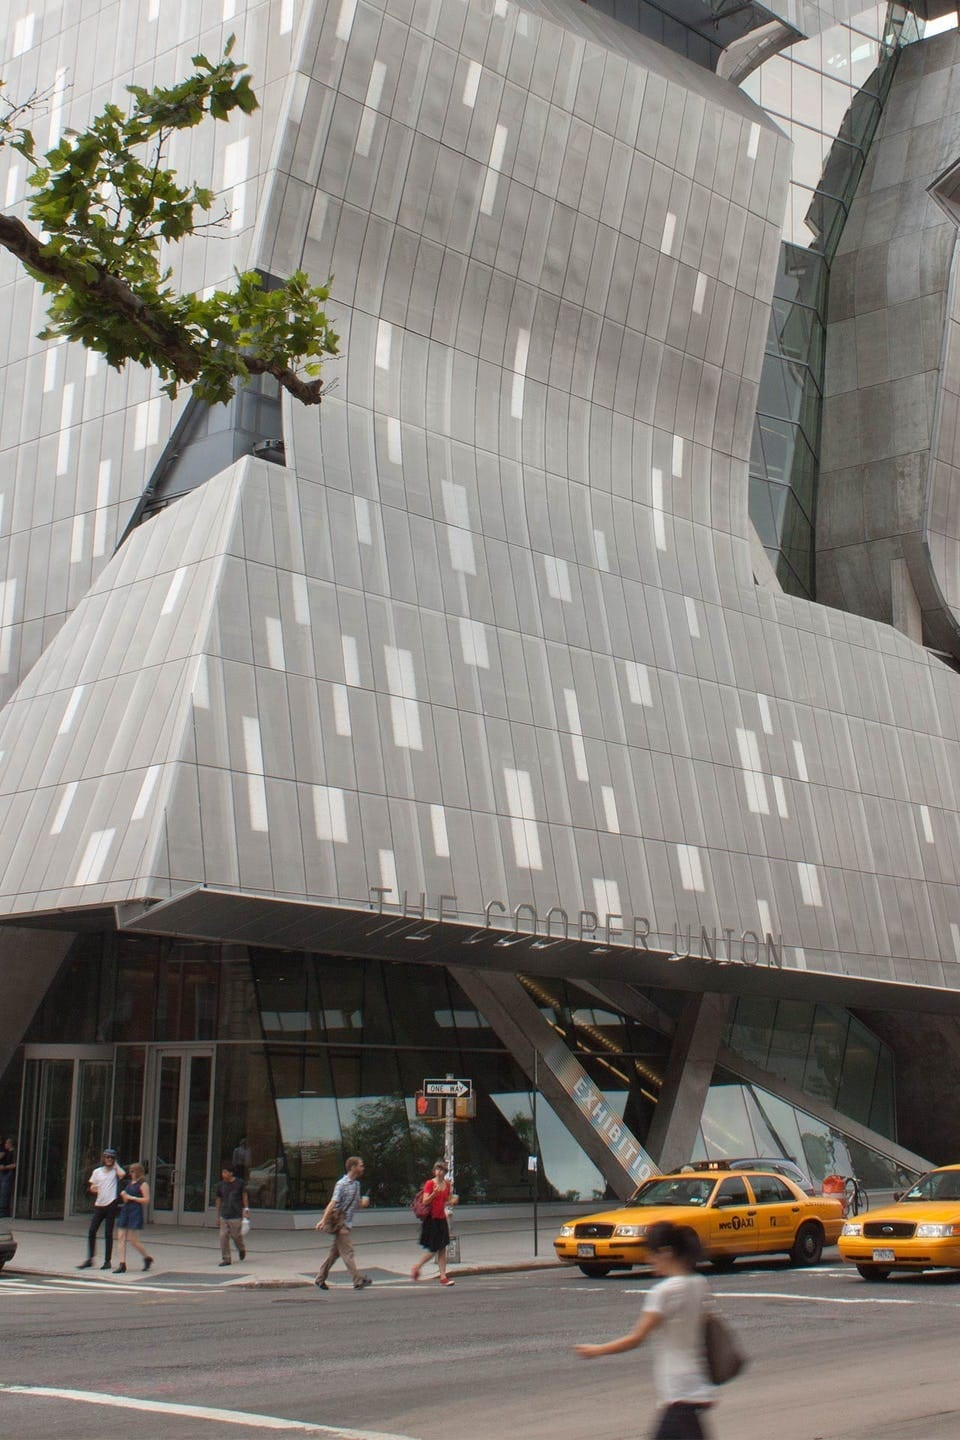 PICTURED: COOPER UNION NEW ACADEMIC BUILDING.